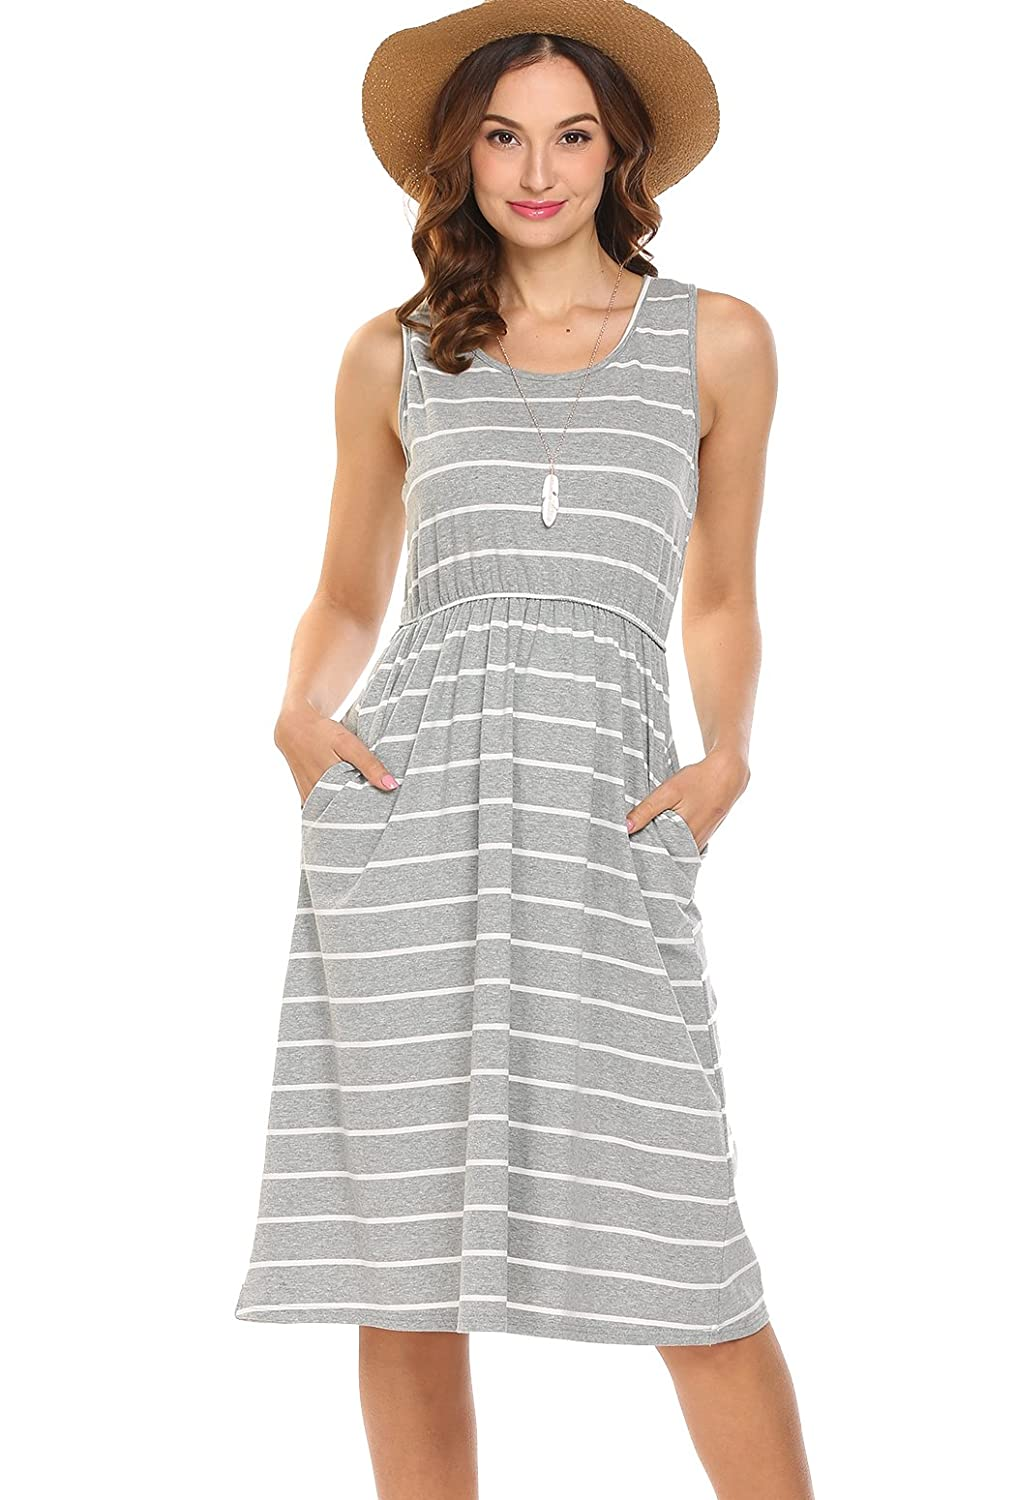 Hount Women s Summer Sleeveless Striped Empire Waist Loose Midi Casual Dress  with Pockets at Amazon Women s Clothing store  d5f22eed0